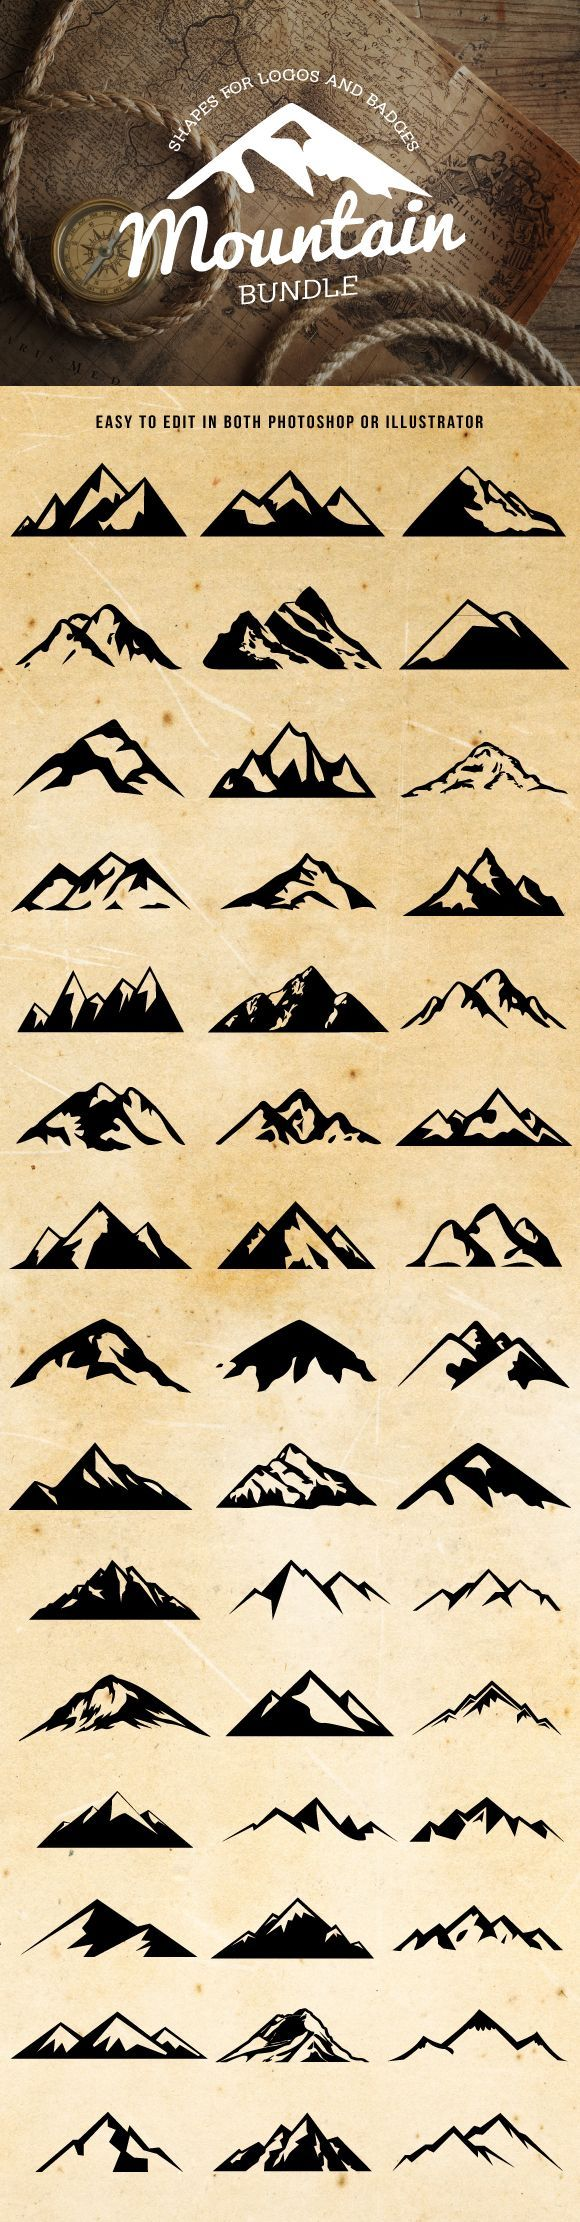 Check out Mountain Shapes For Logos Bundle by lovepower on Creative Market https://creativemarket.com/lovepower/162705-Mountain-Shapes-For-Logos-Bundle?u=lovepower #mountains #design